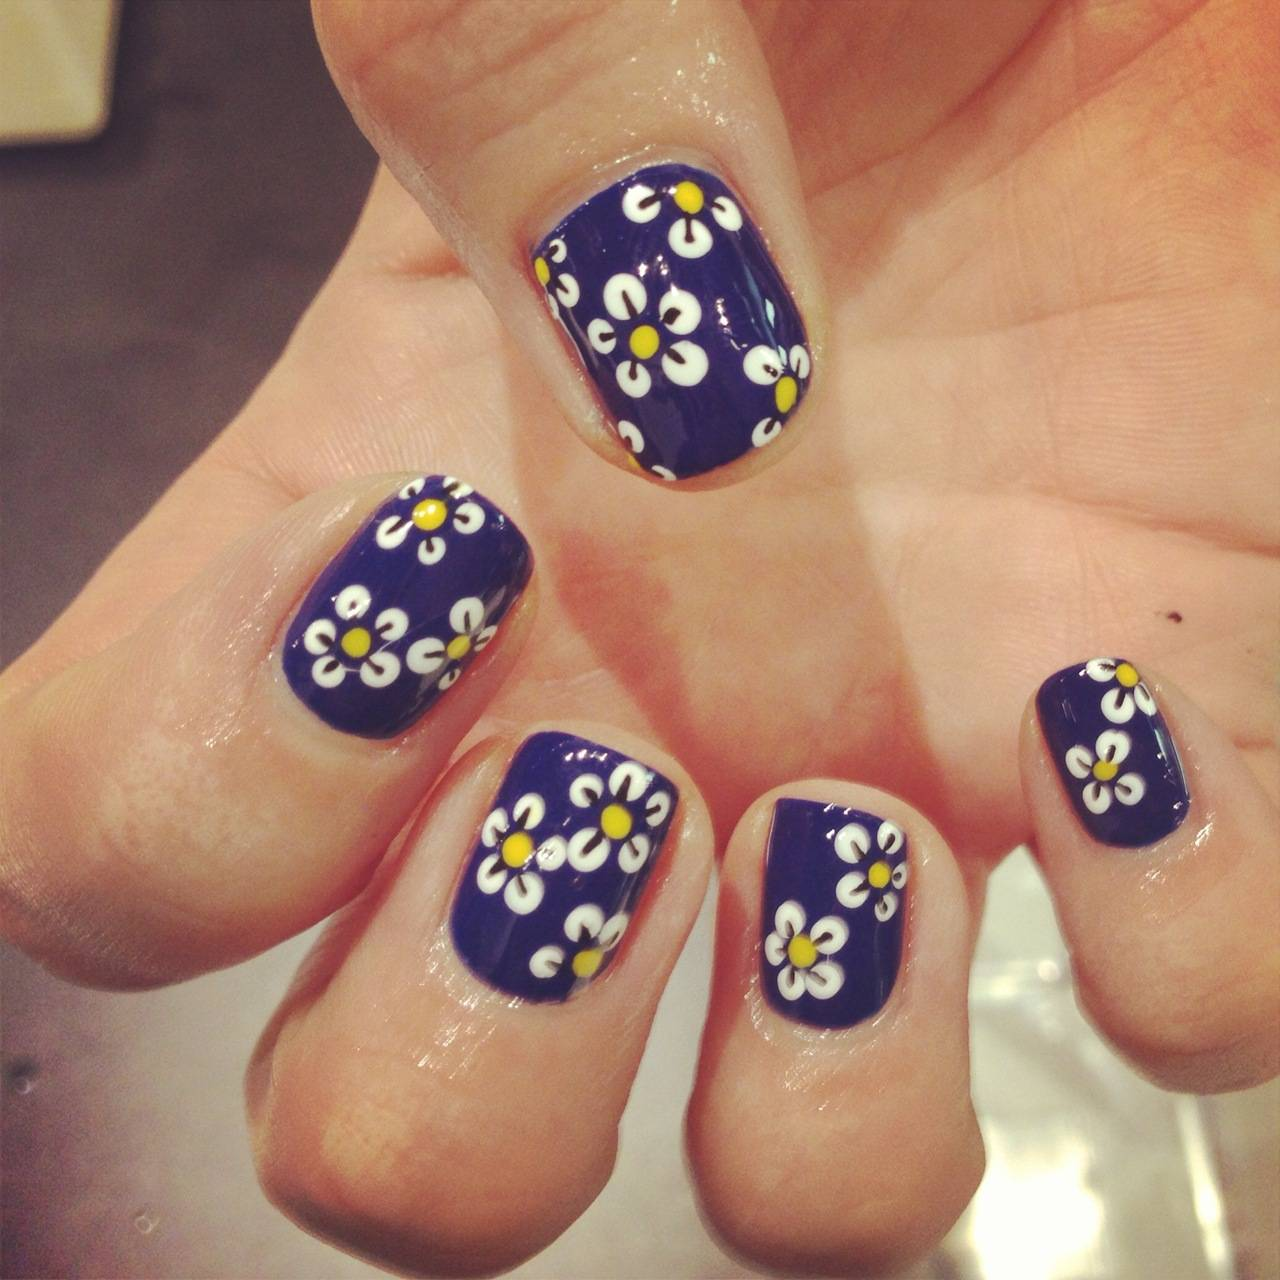 Daisy nail art ideas!